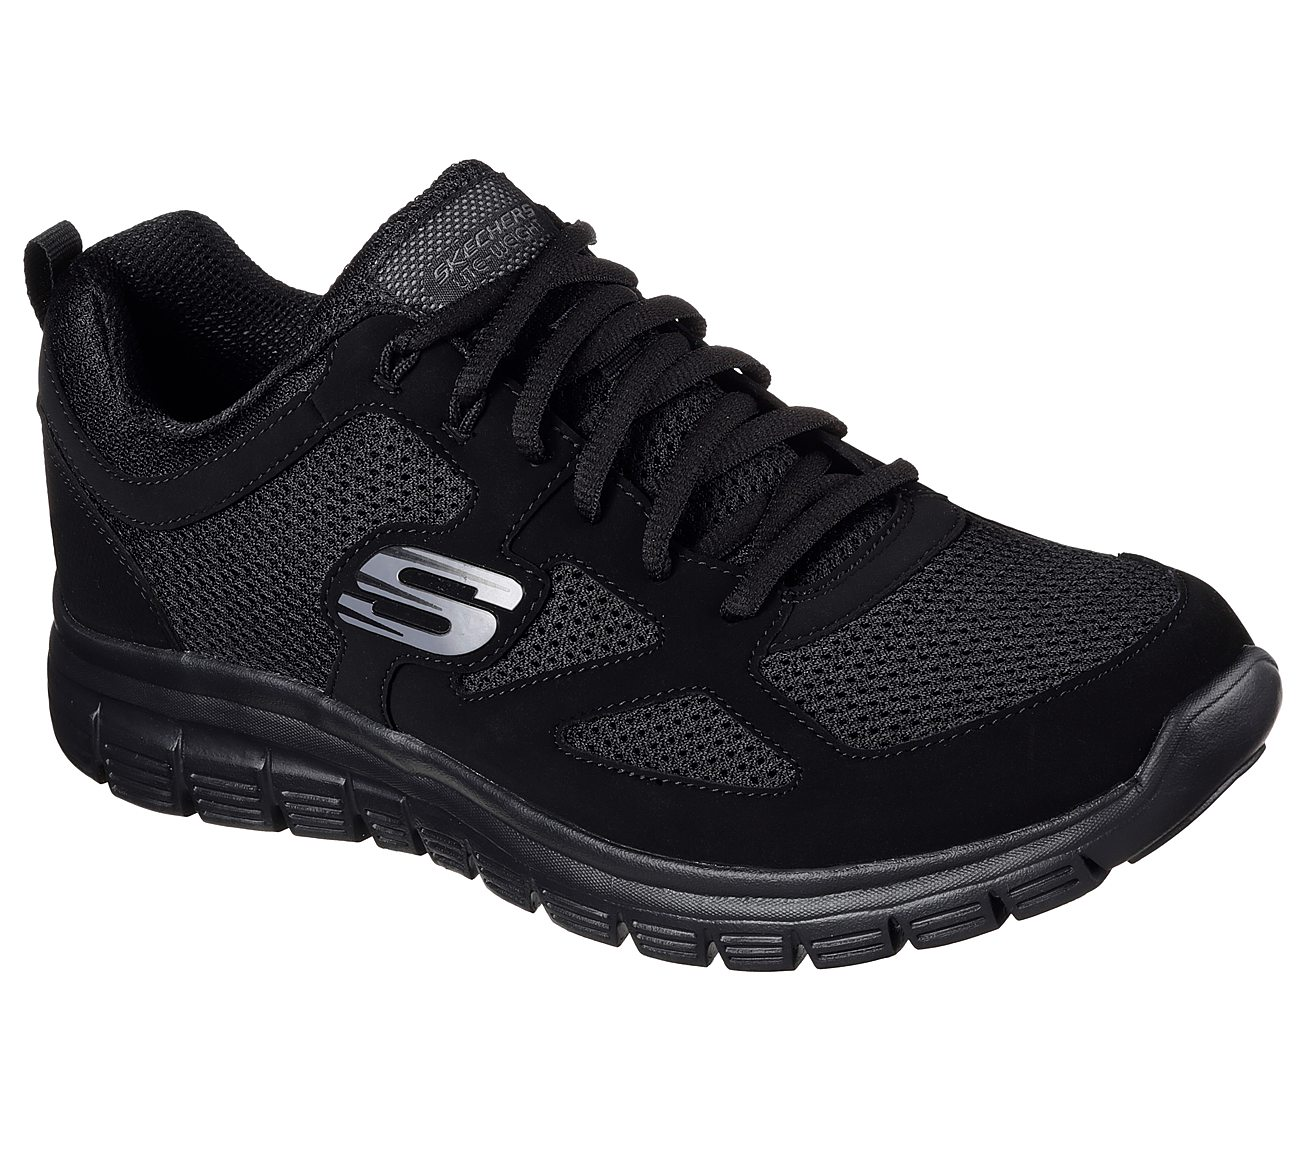 SKECHERS BURNS AGOURA – SCARPA SPORTIVA UOMO IN MEMORY FOAM